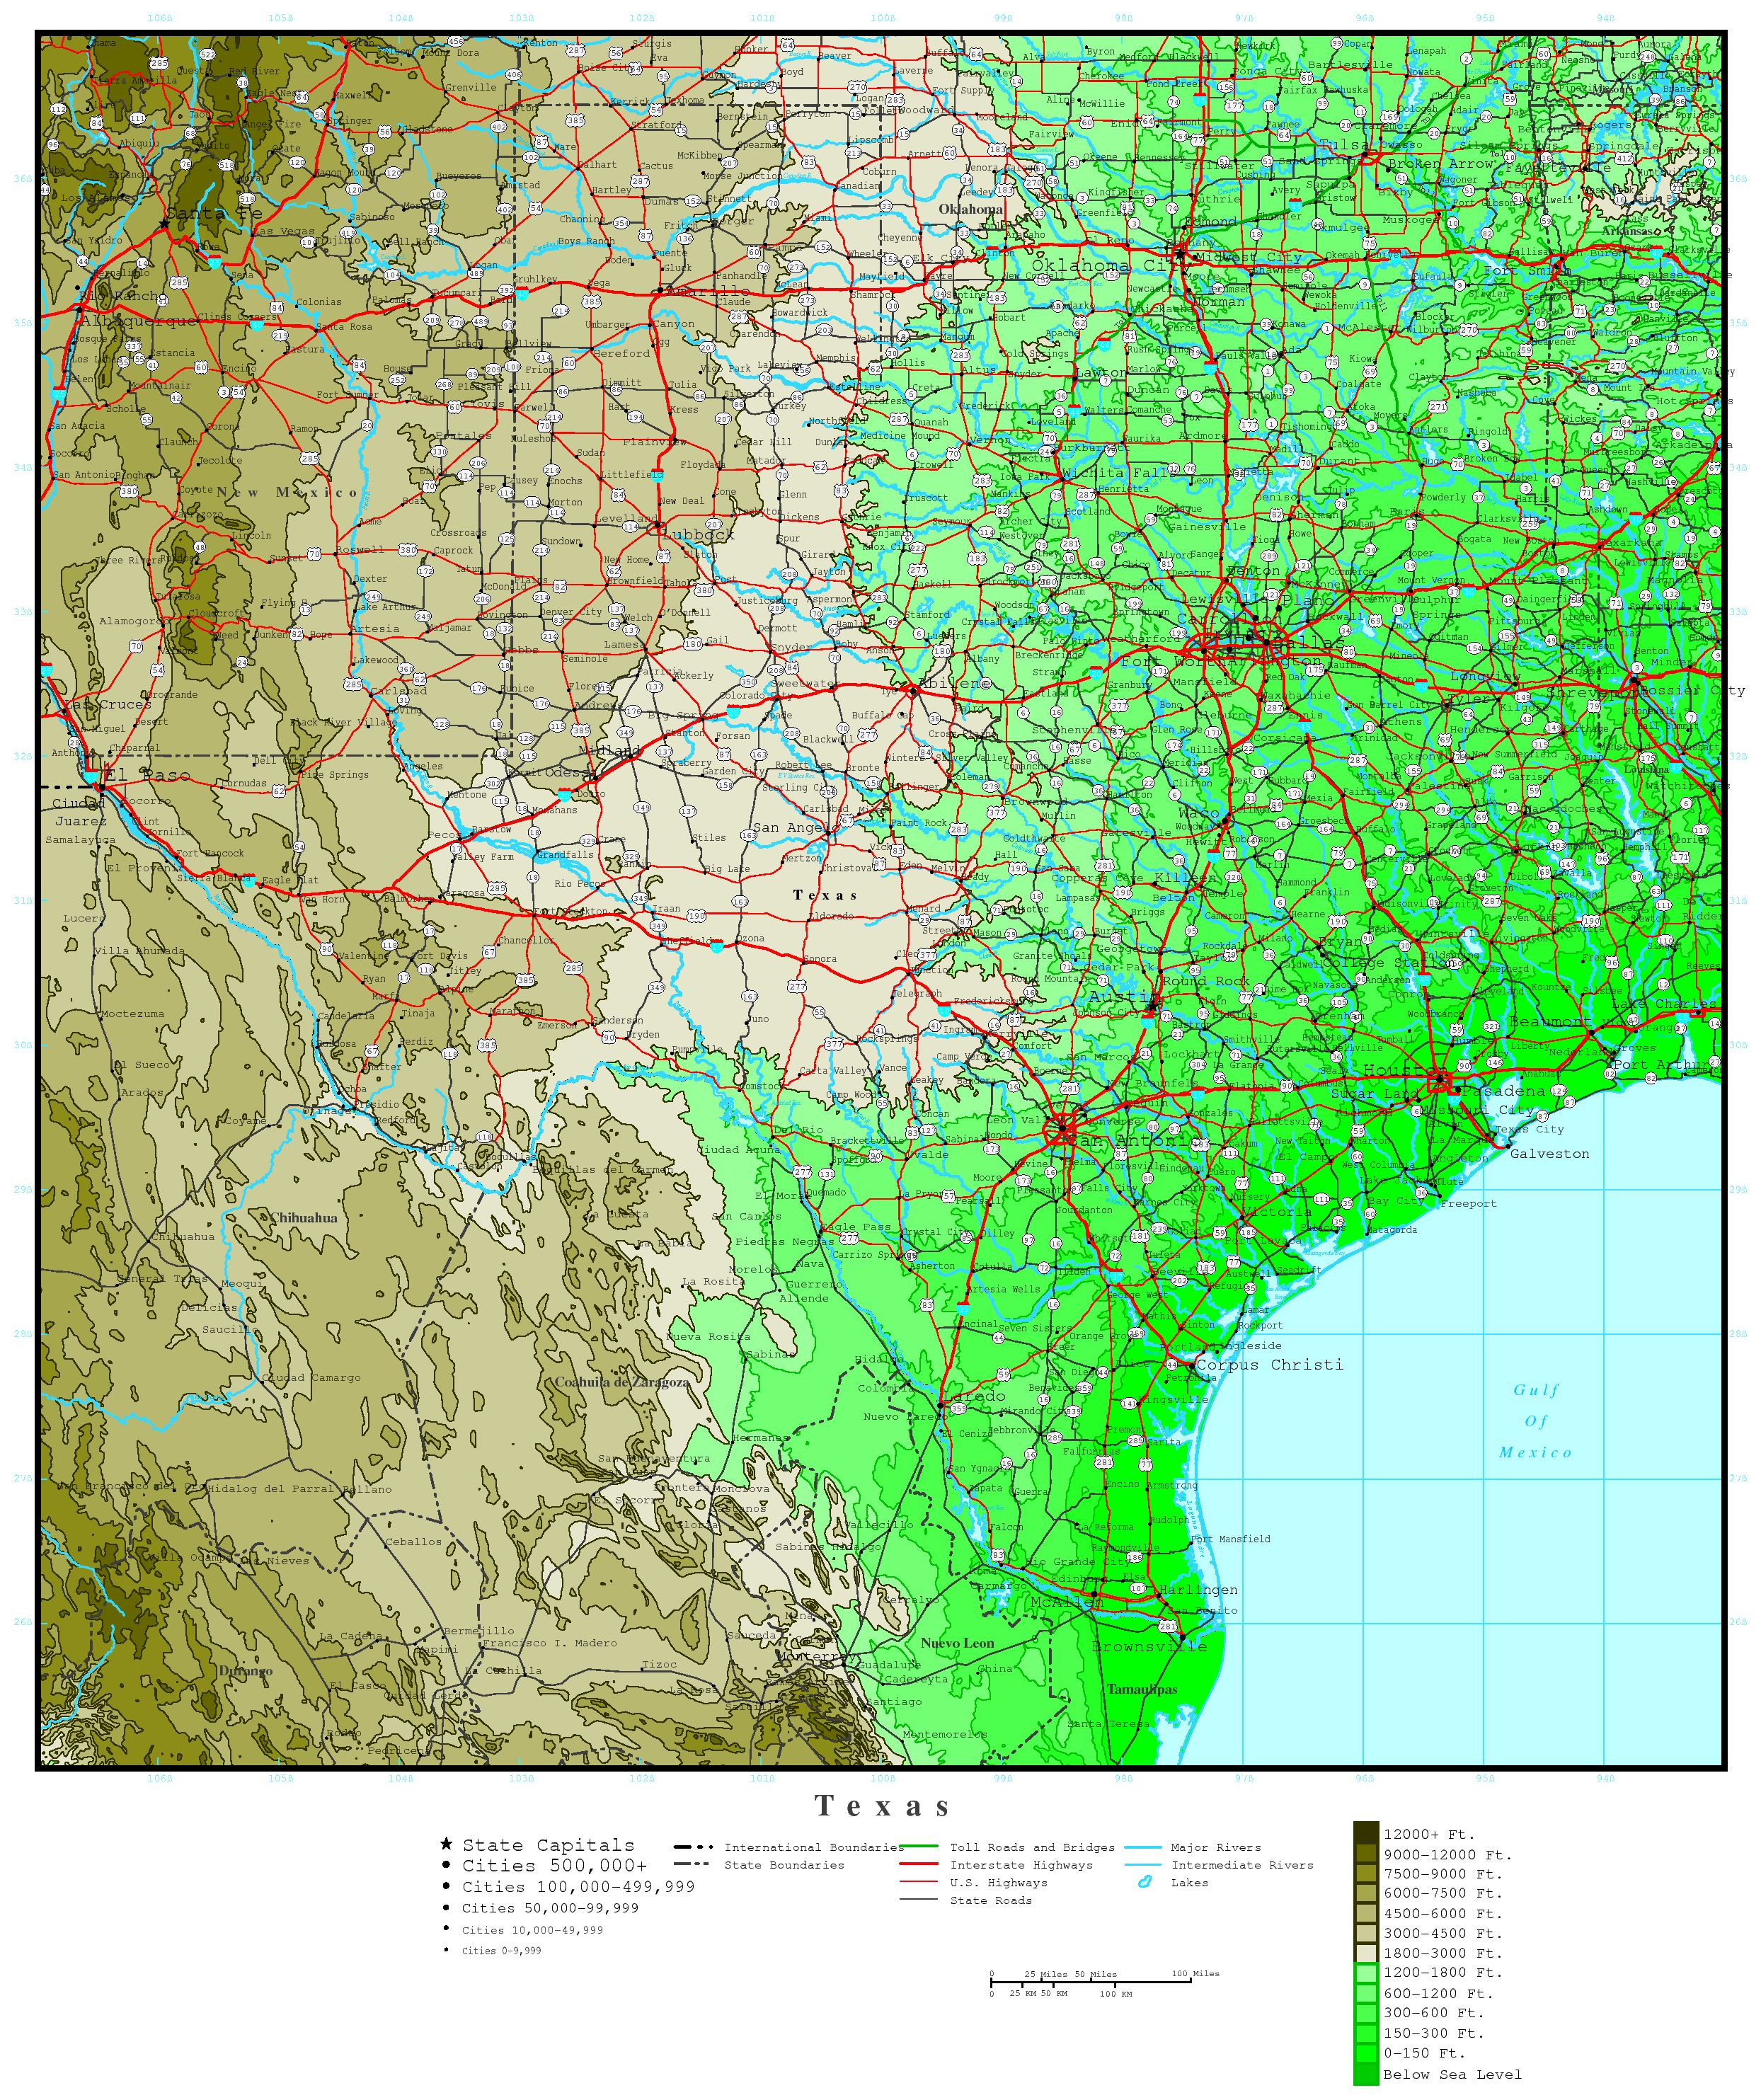 State Map Of Texas Showing Cities.Texas Elevation Map